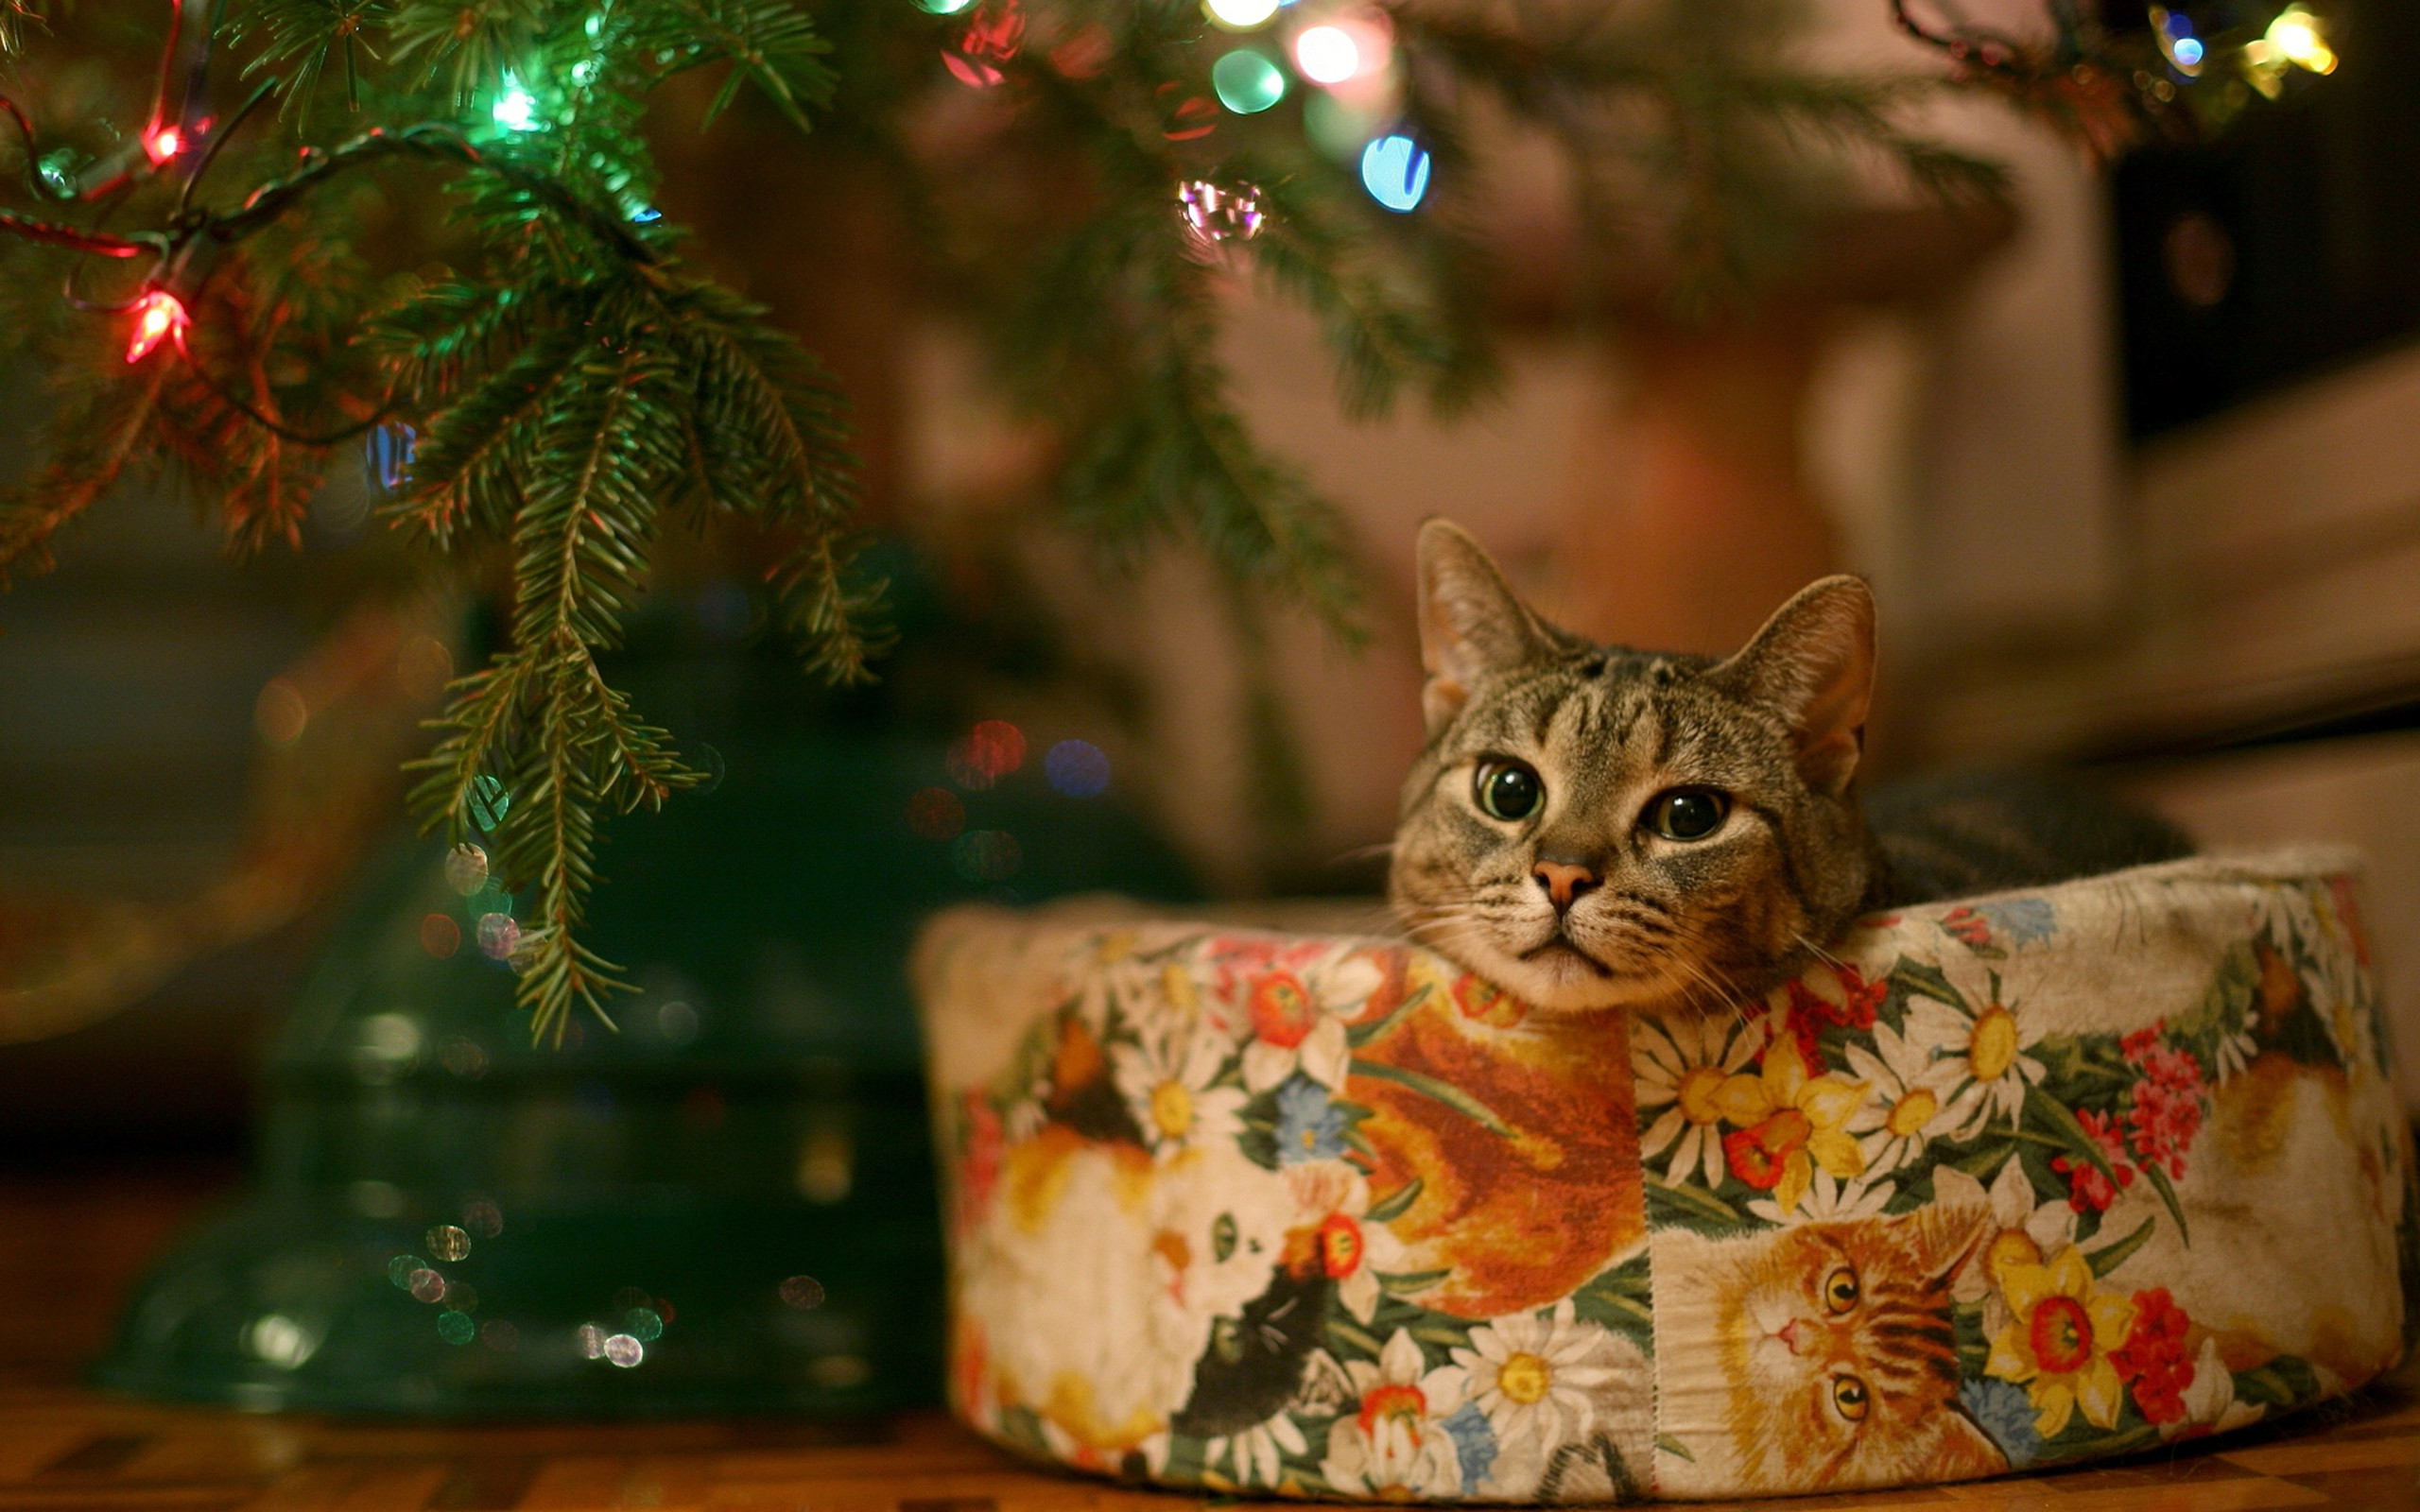 Cute Background Wallpaper For Computer Christmas Lights Animal Hd New Year Cat Animals Lights Leaves Bokeh Wallpapers